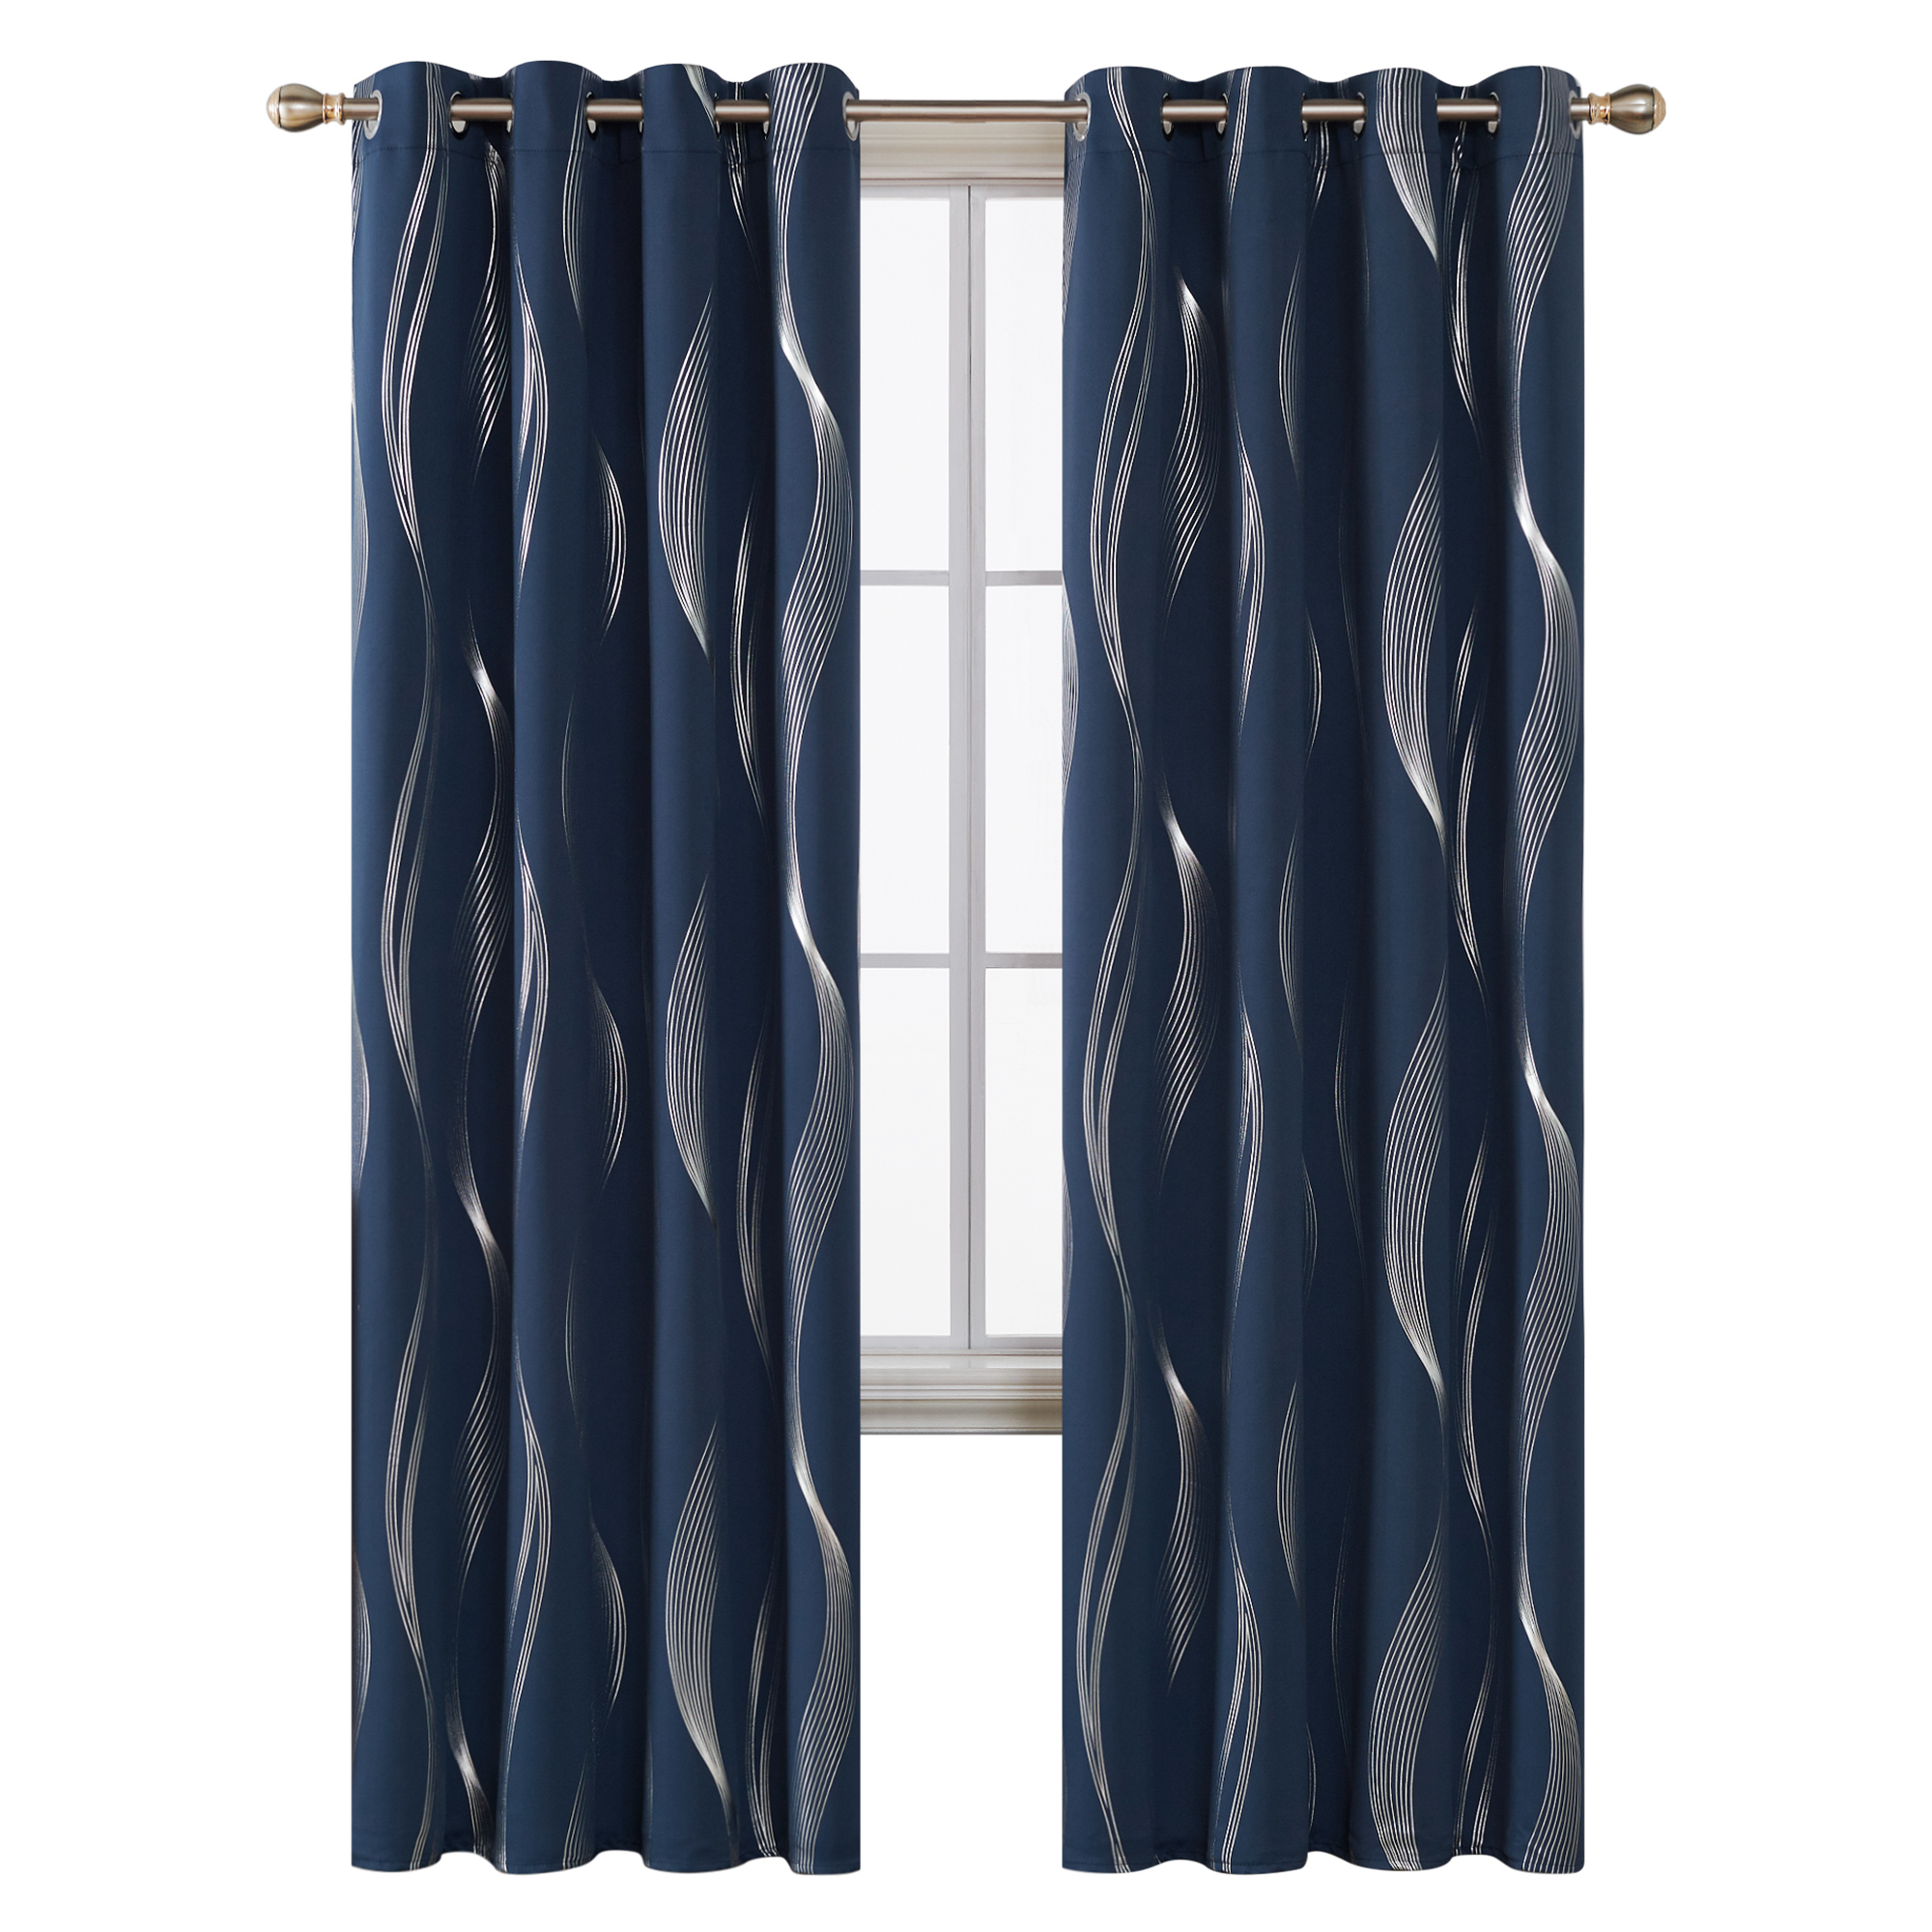 indian style navy blue stripes wave foil printed thermal insulated blackout curtains fabric for hotel room bedroom living room buy hotel room